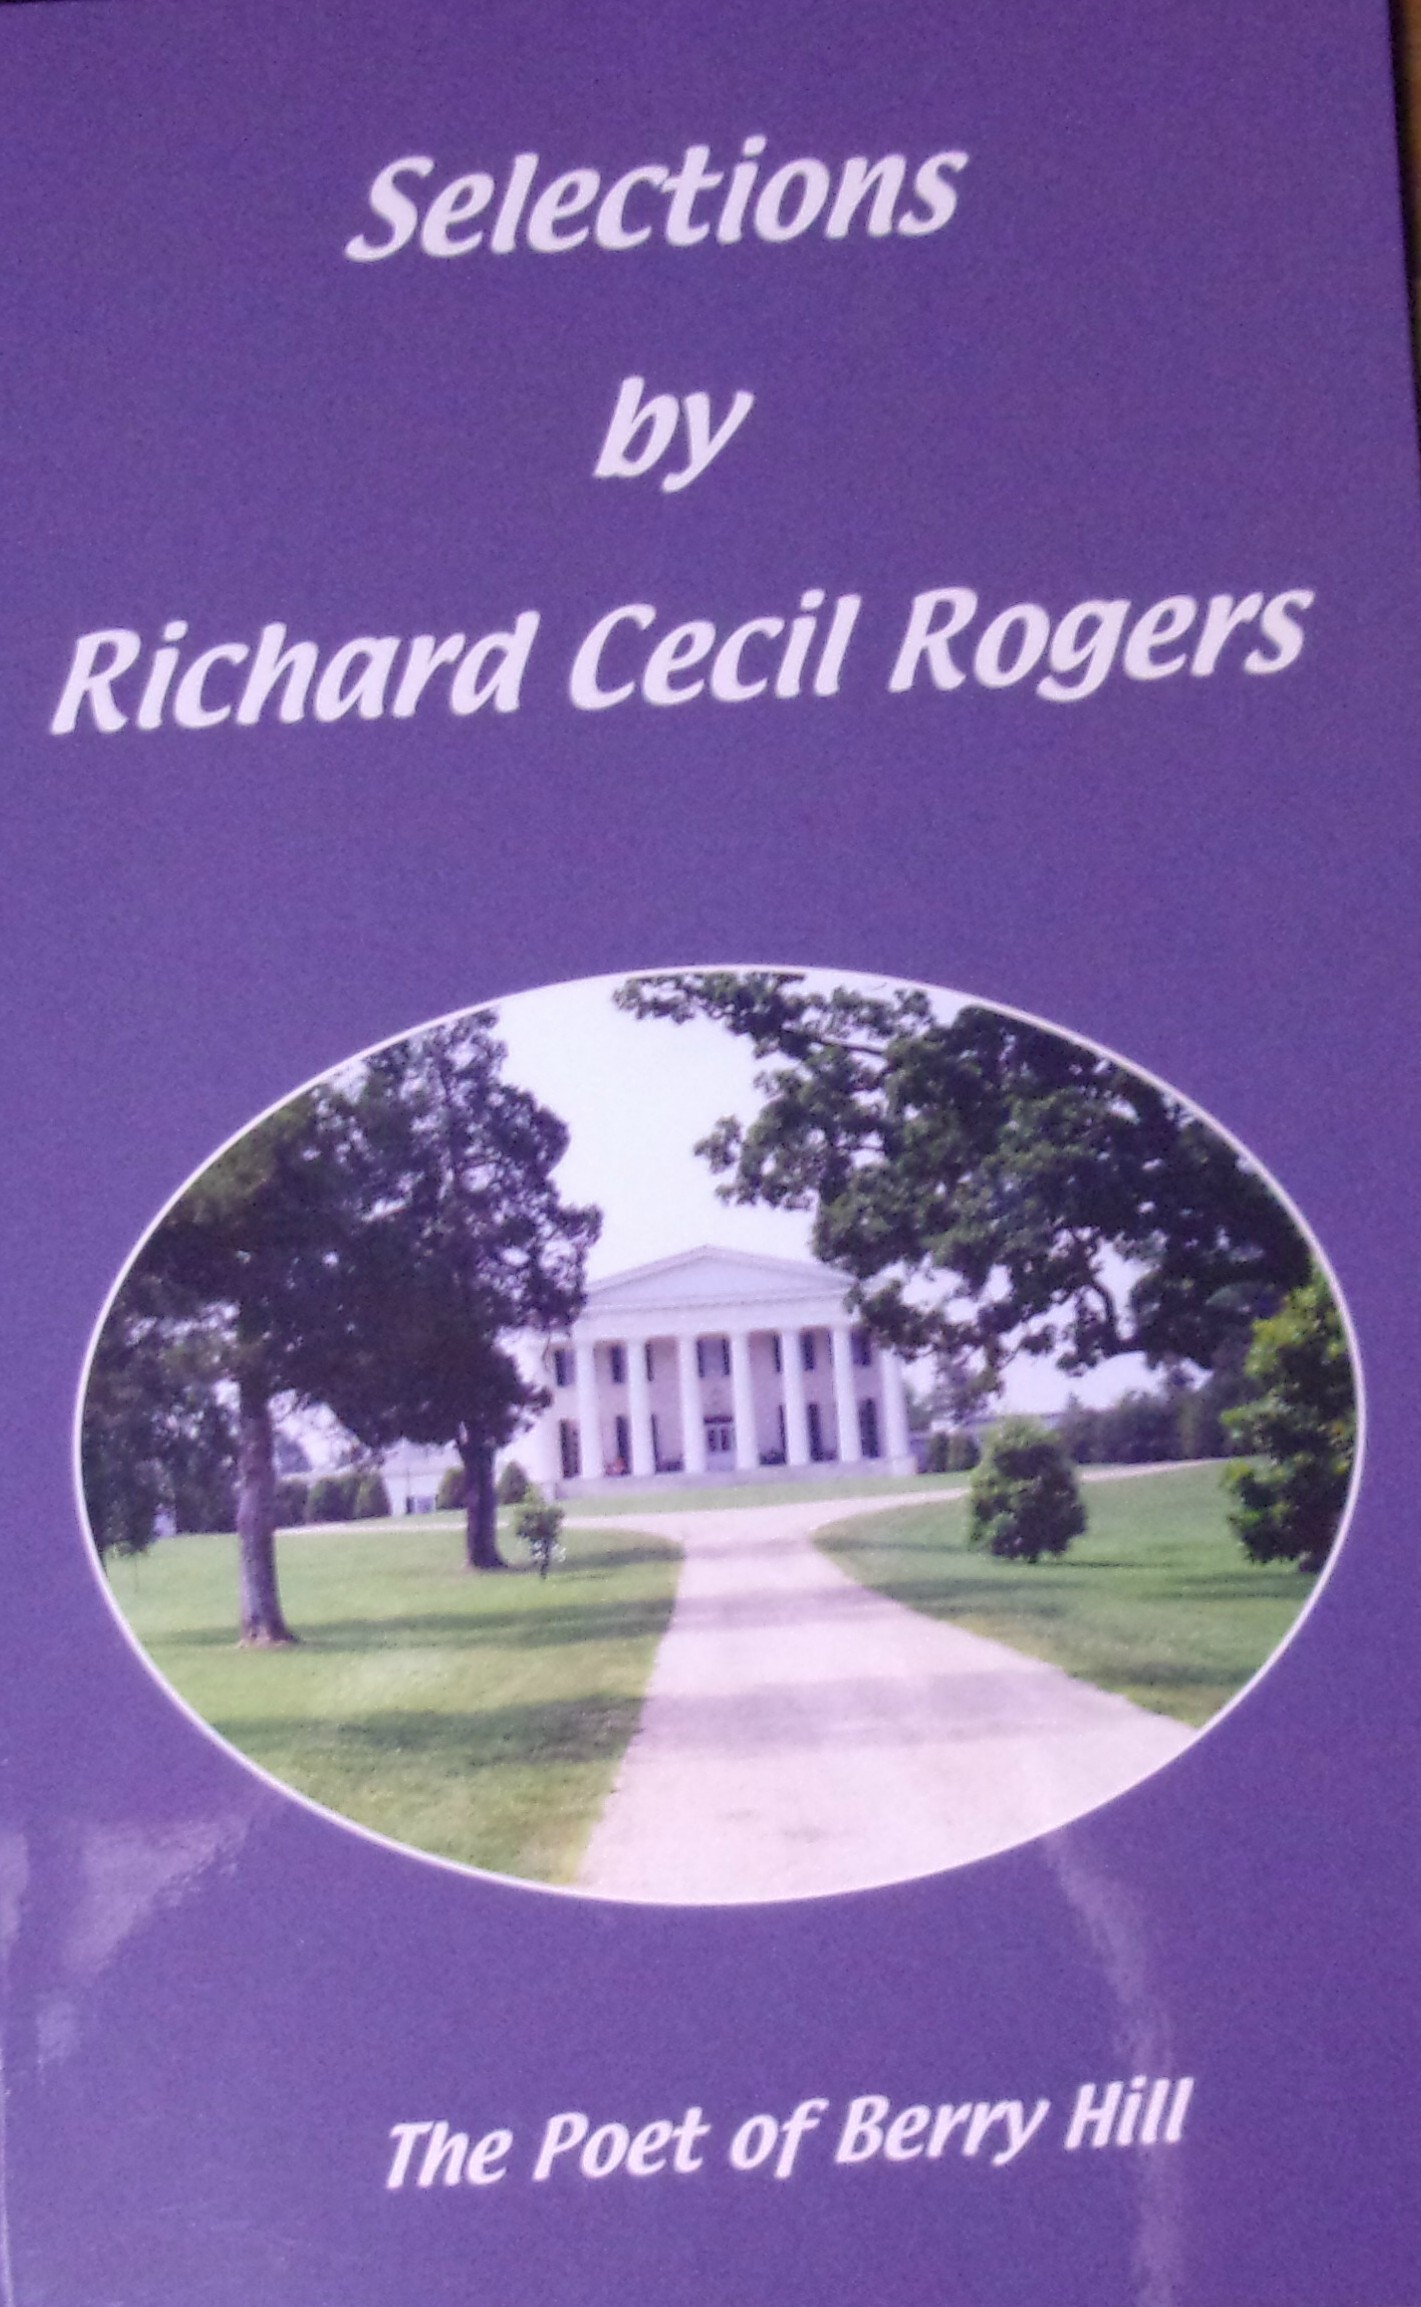 Selections by Richard Cecil Rogers The Poet of Berry Hill.jpg